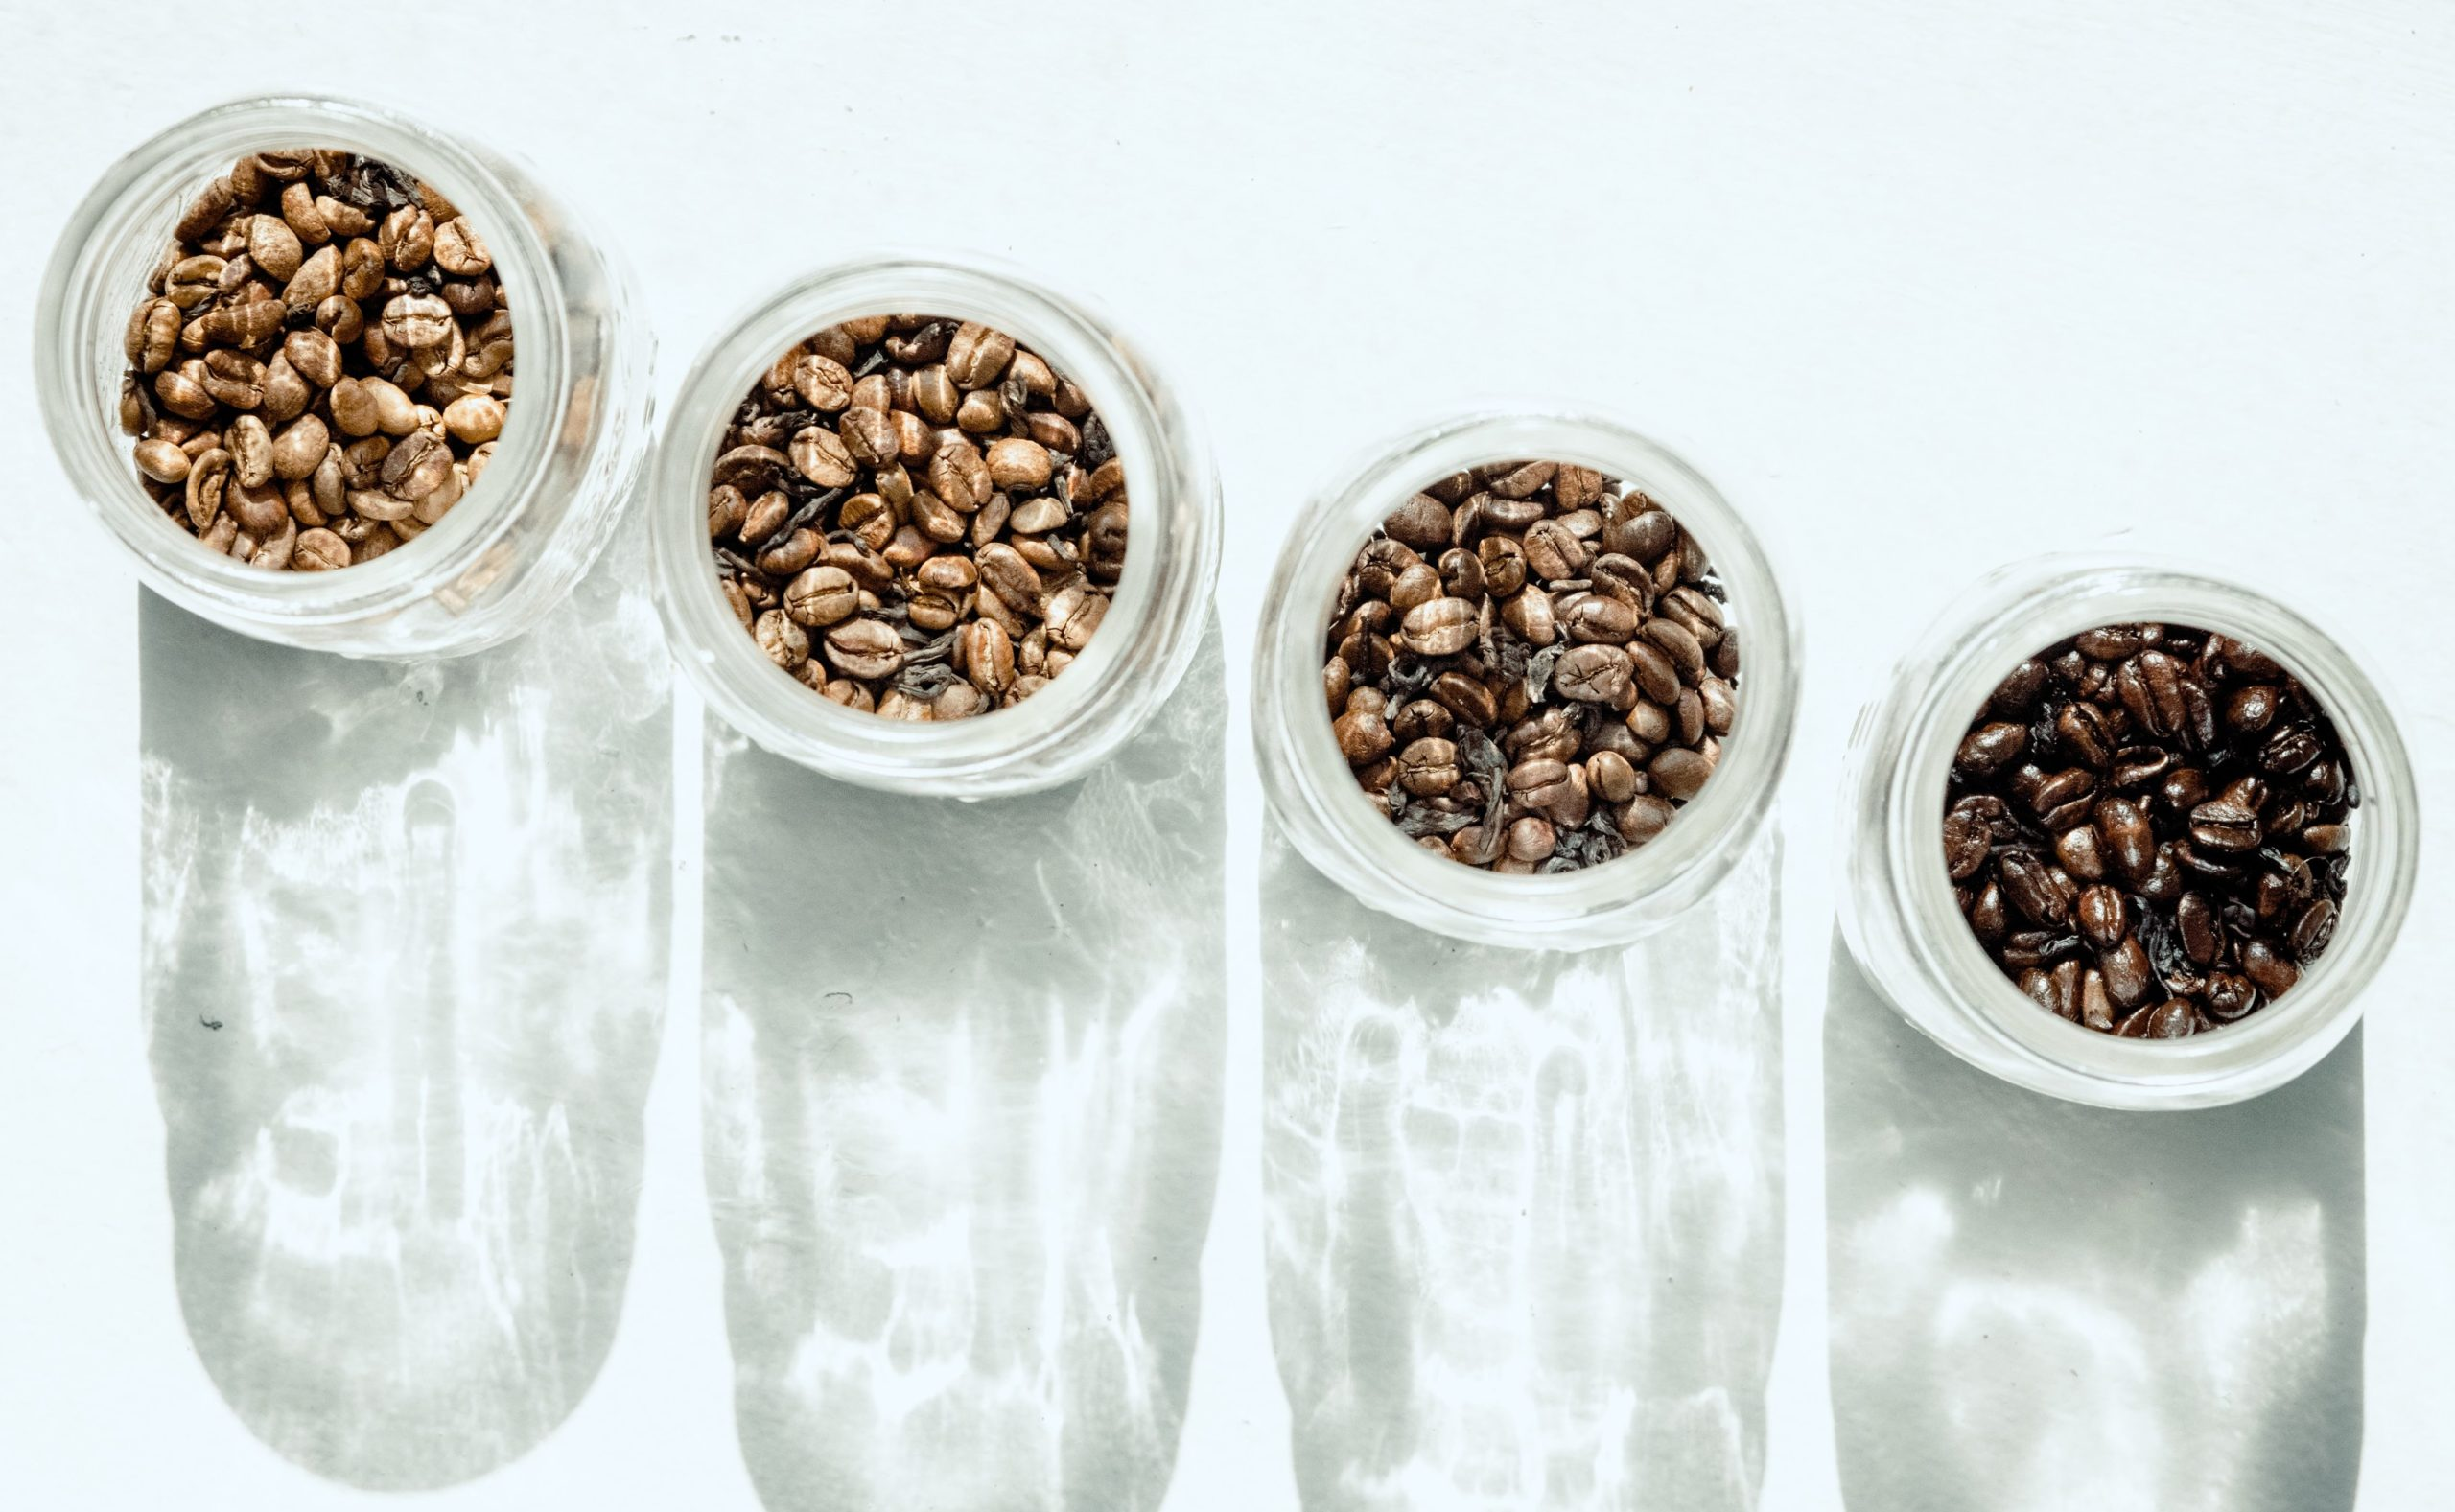 4 jars filled with coffee beans